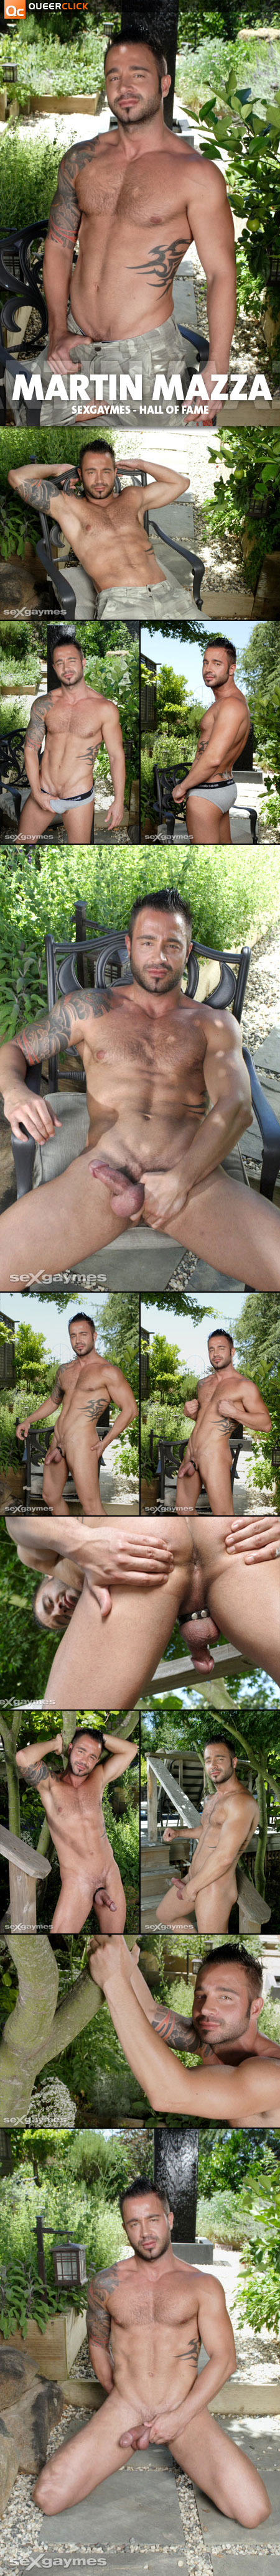 Martin Mazza at SexGaymes.com